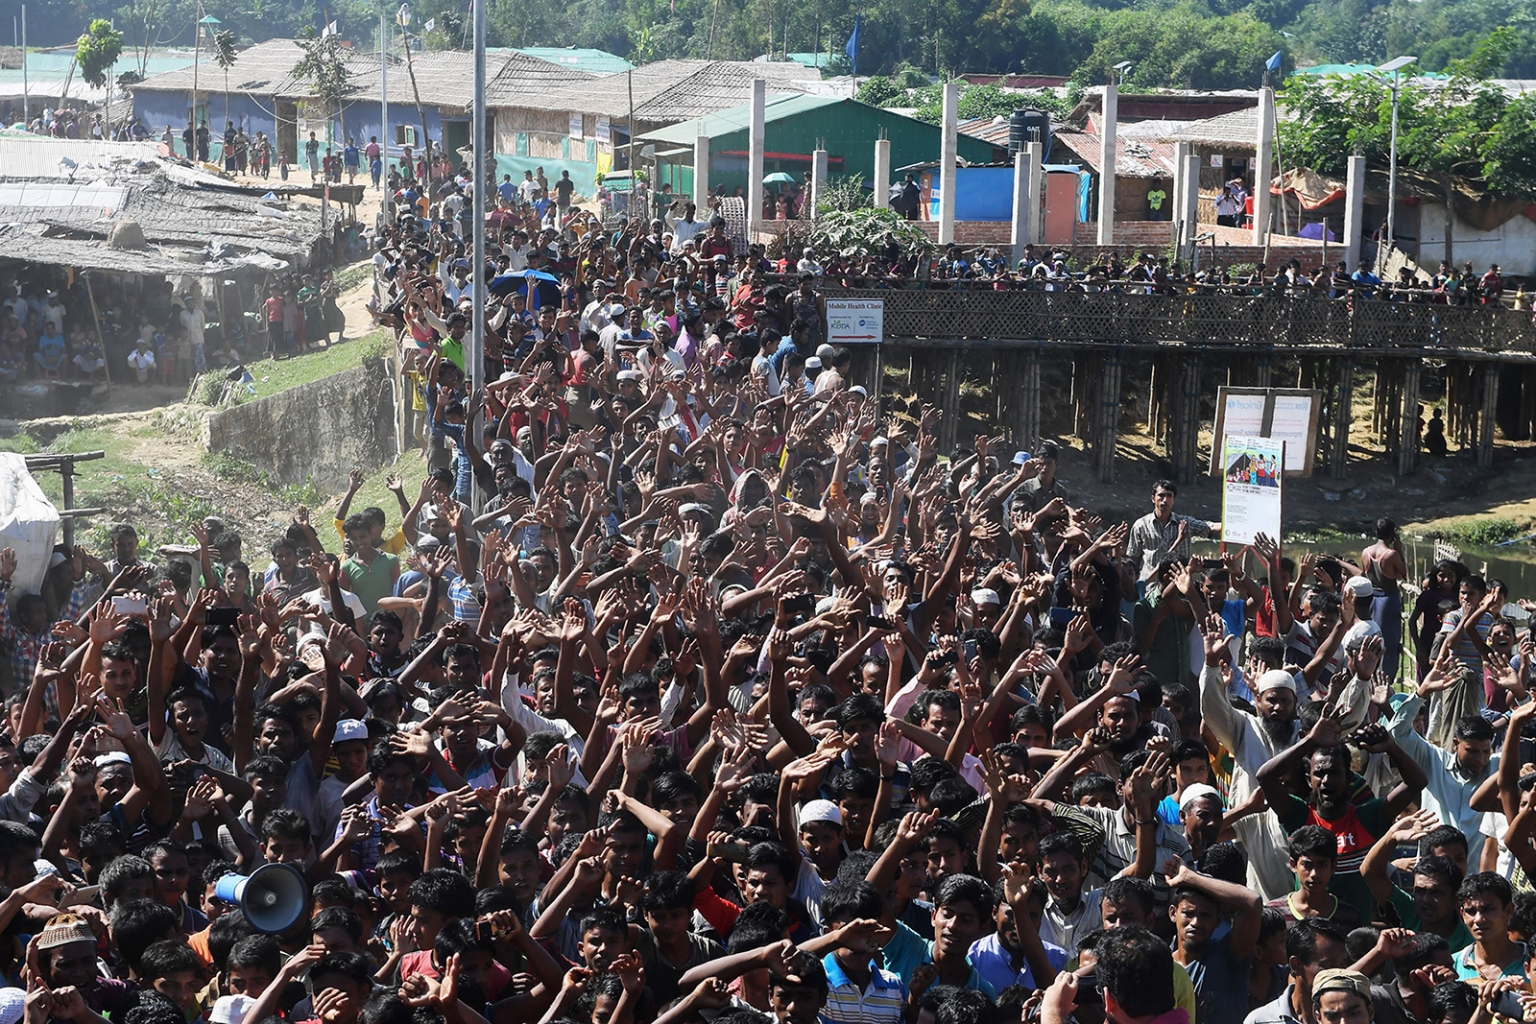 Rohingya refugees shout slogans at a protest against a disputed repatriation program at the Unchiprang refugee camp near Teknaf, Bangladesh, on Nov. 15. Frightened and angry refugees forced Bangladesh to call off efforts to start sending back some of the hundreds of thousands of stateless Muslims to Myanmar. DIBYANGSHU SARKAR/AFP/Getty Images